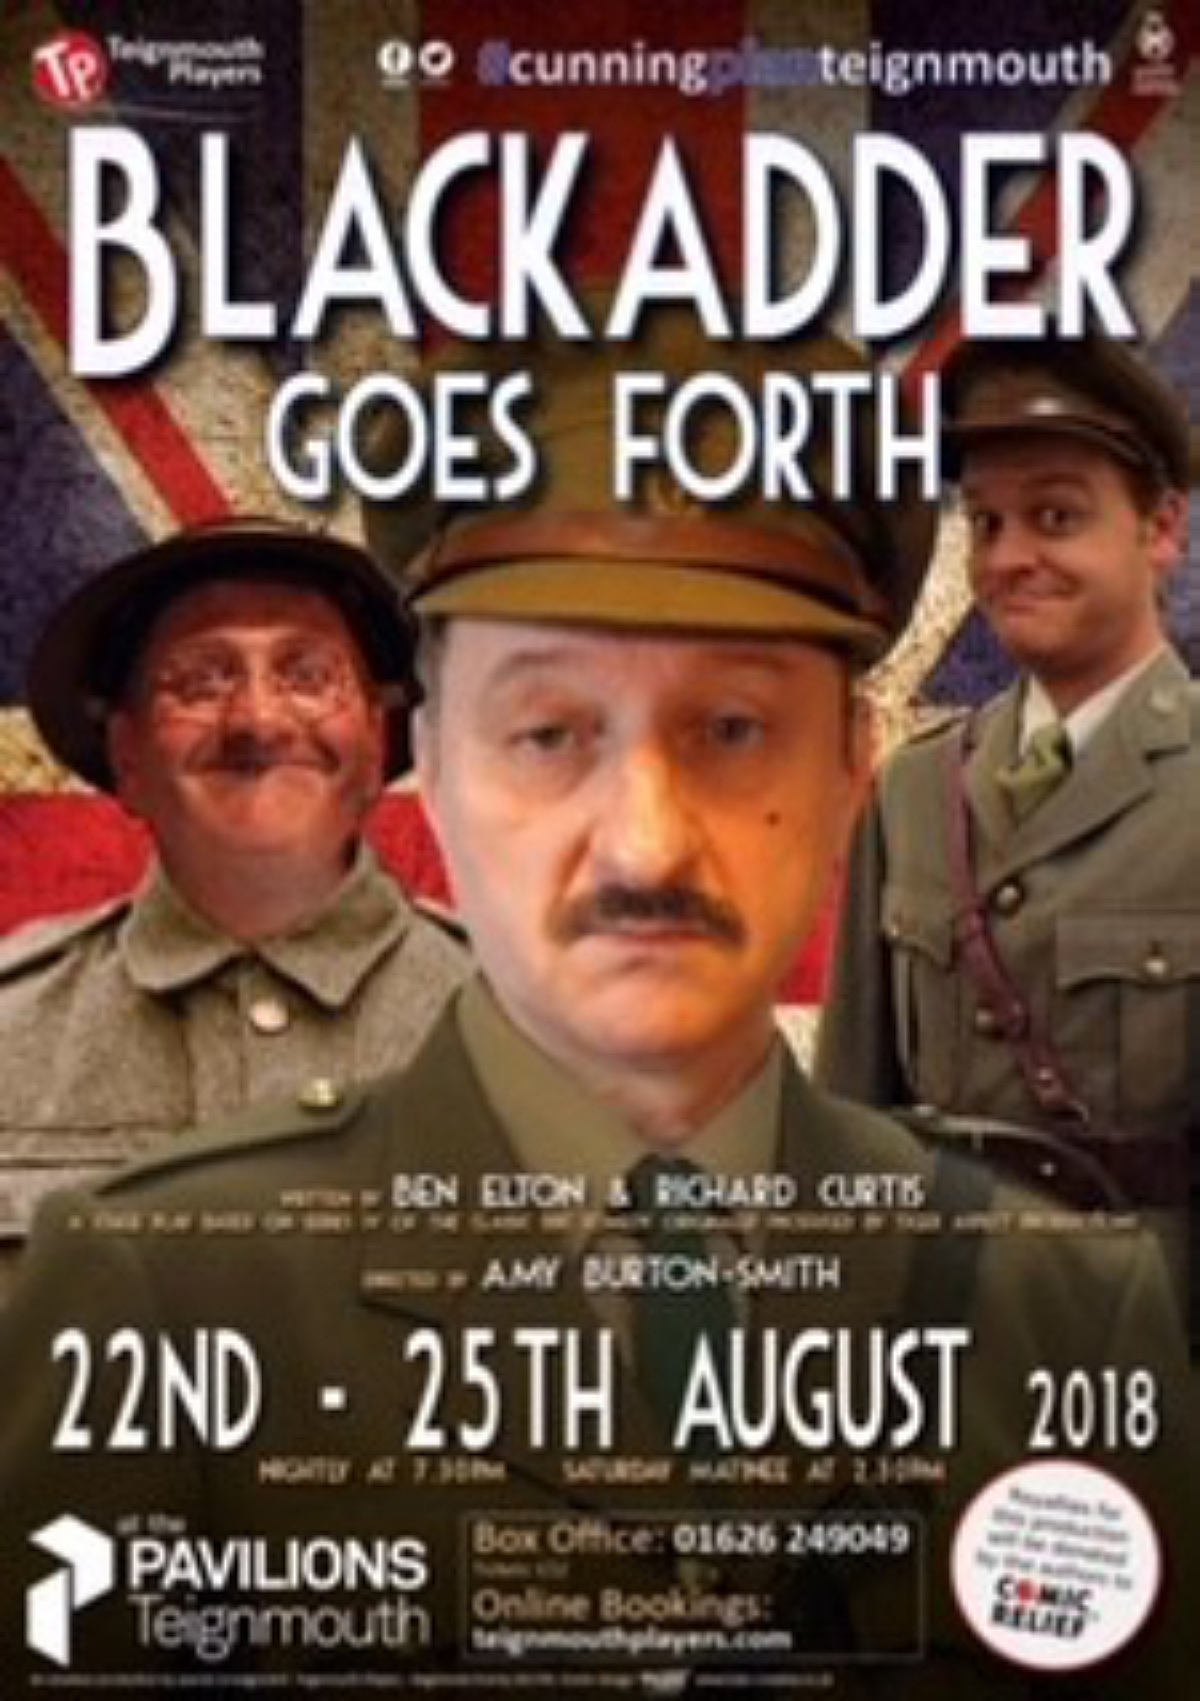 Blackadder Goes Forth 2.jpg